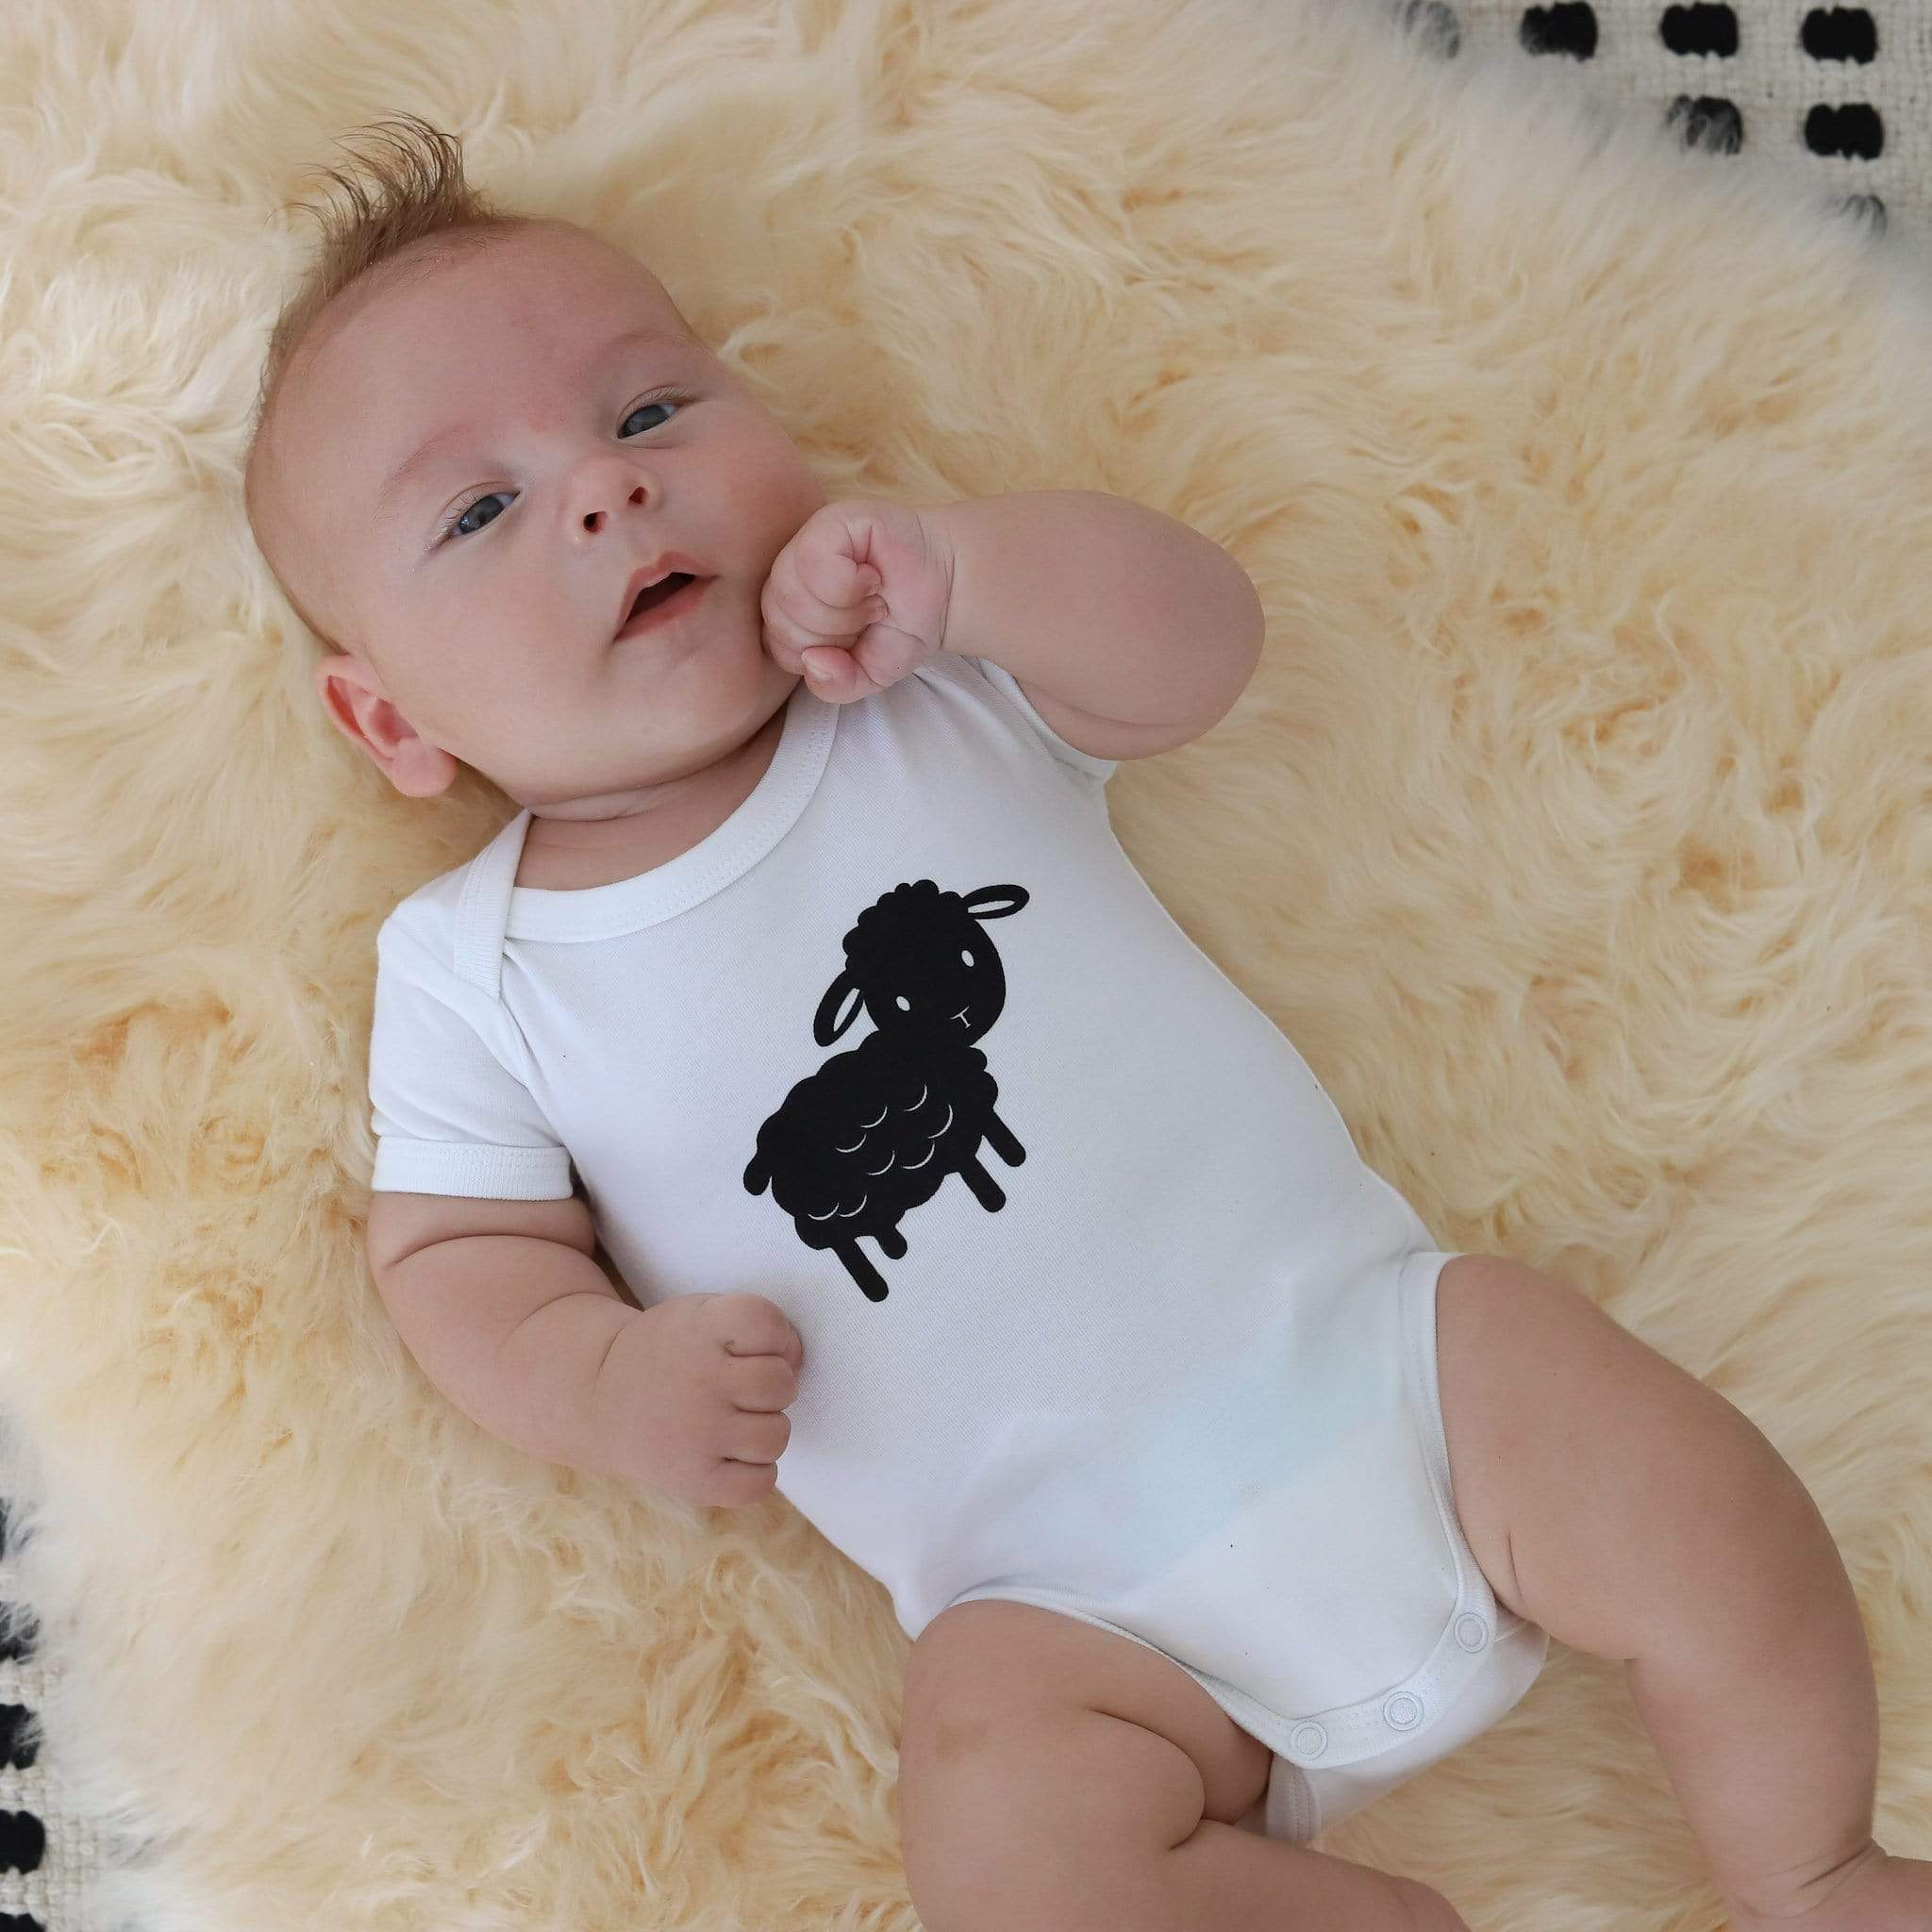 From NZ with Love Bodysuit & Pants Set - Sheep